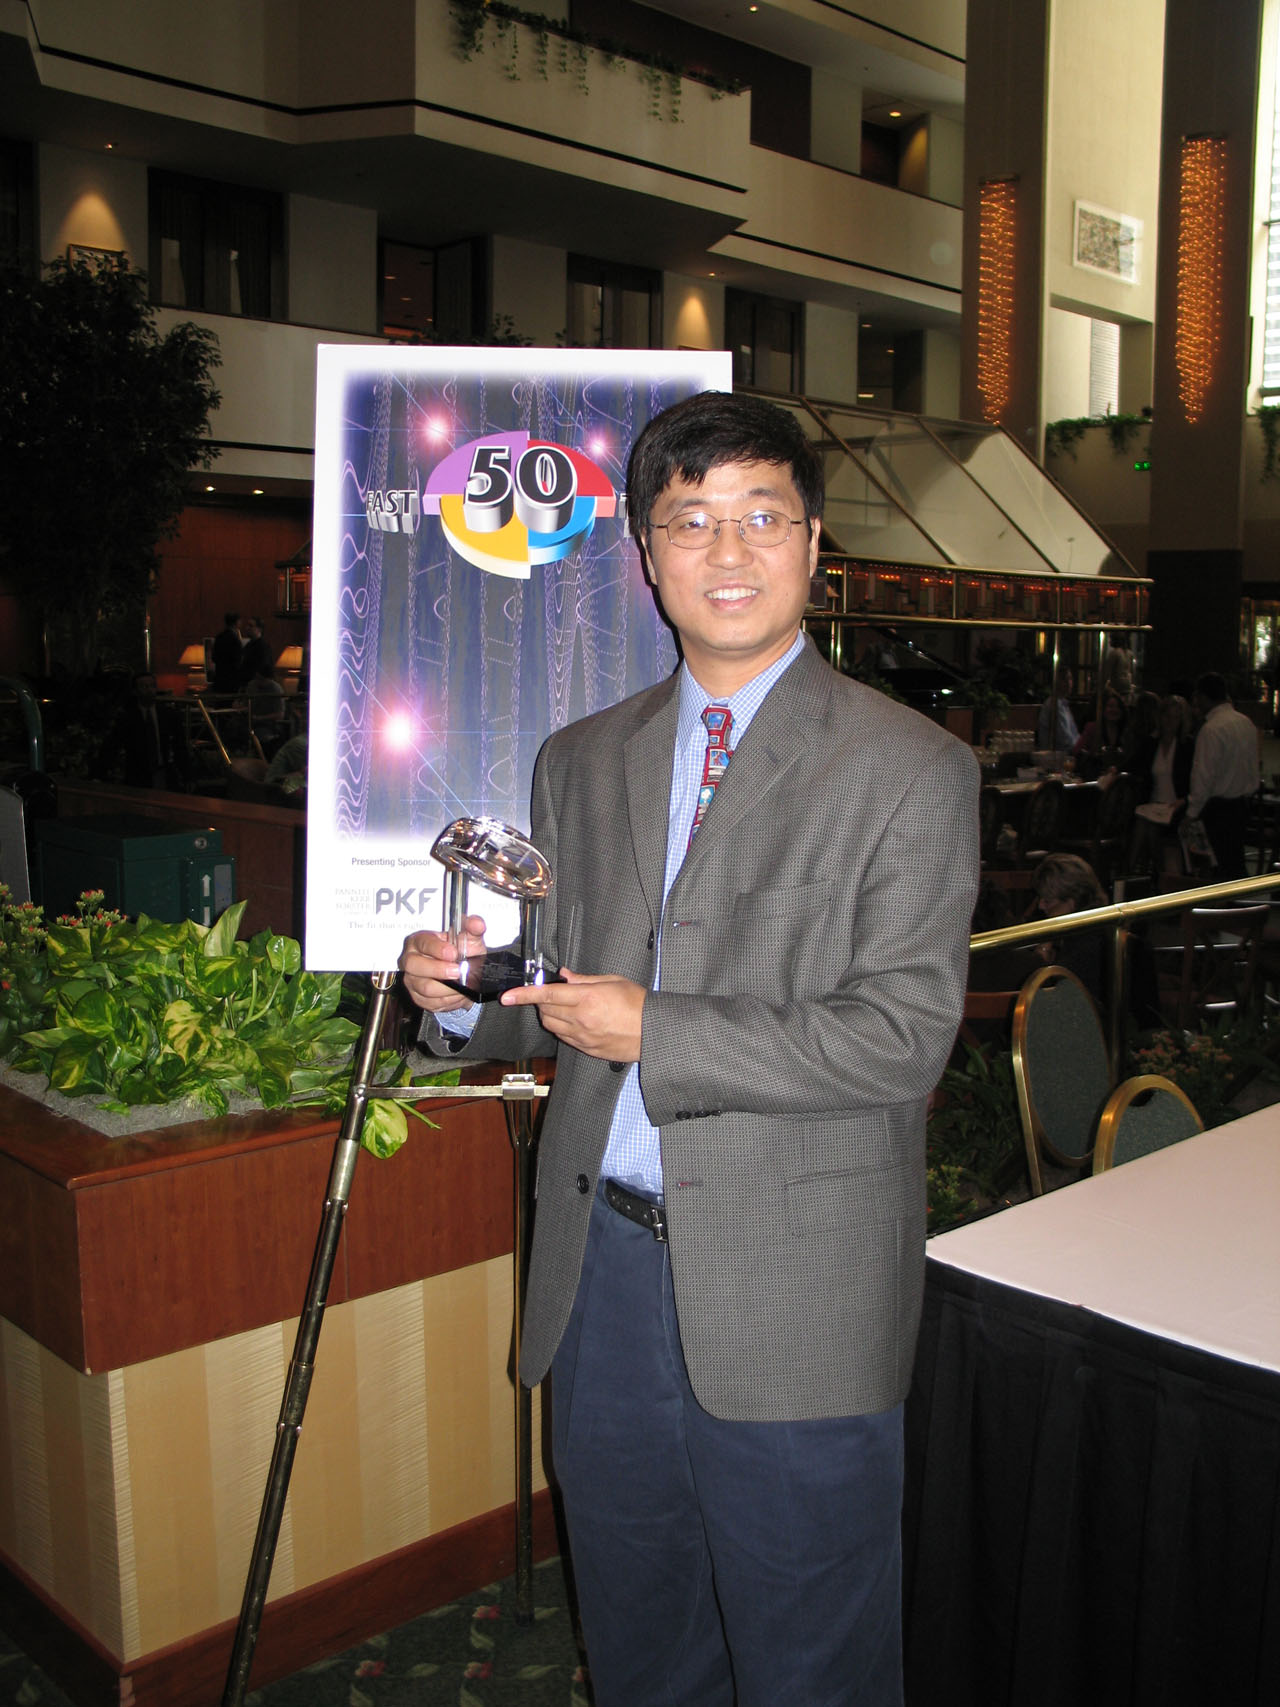 Michael Chang received the Fast Tech 50 award on behalf of Directron.com